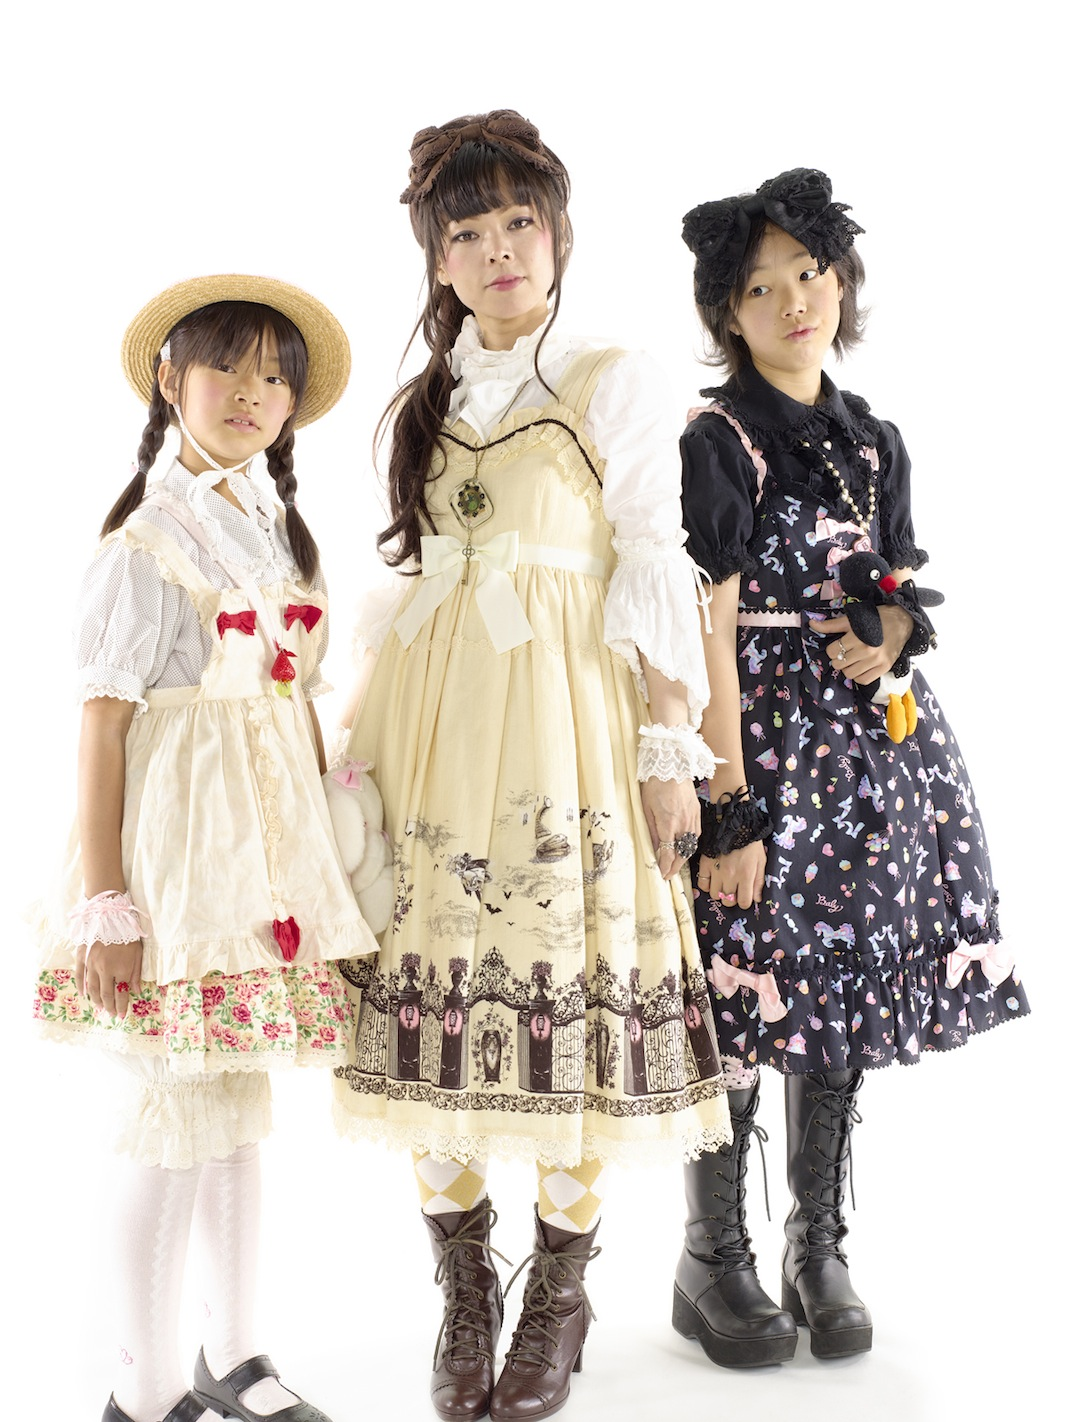 Names: Gumitan, juri, Piyoriina, Fashion Category: Lolitas